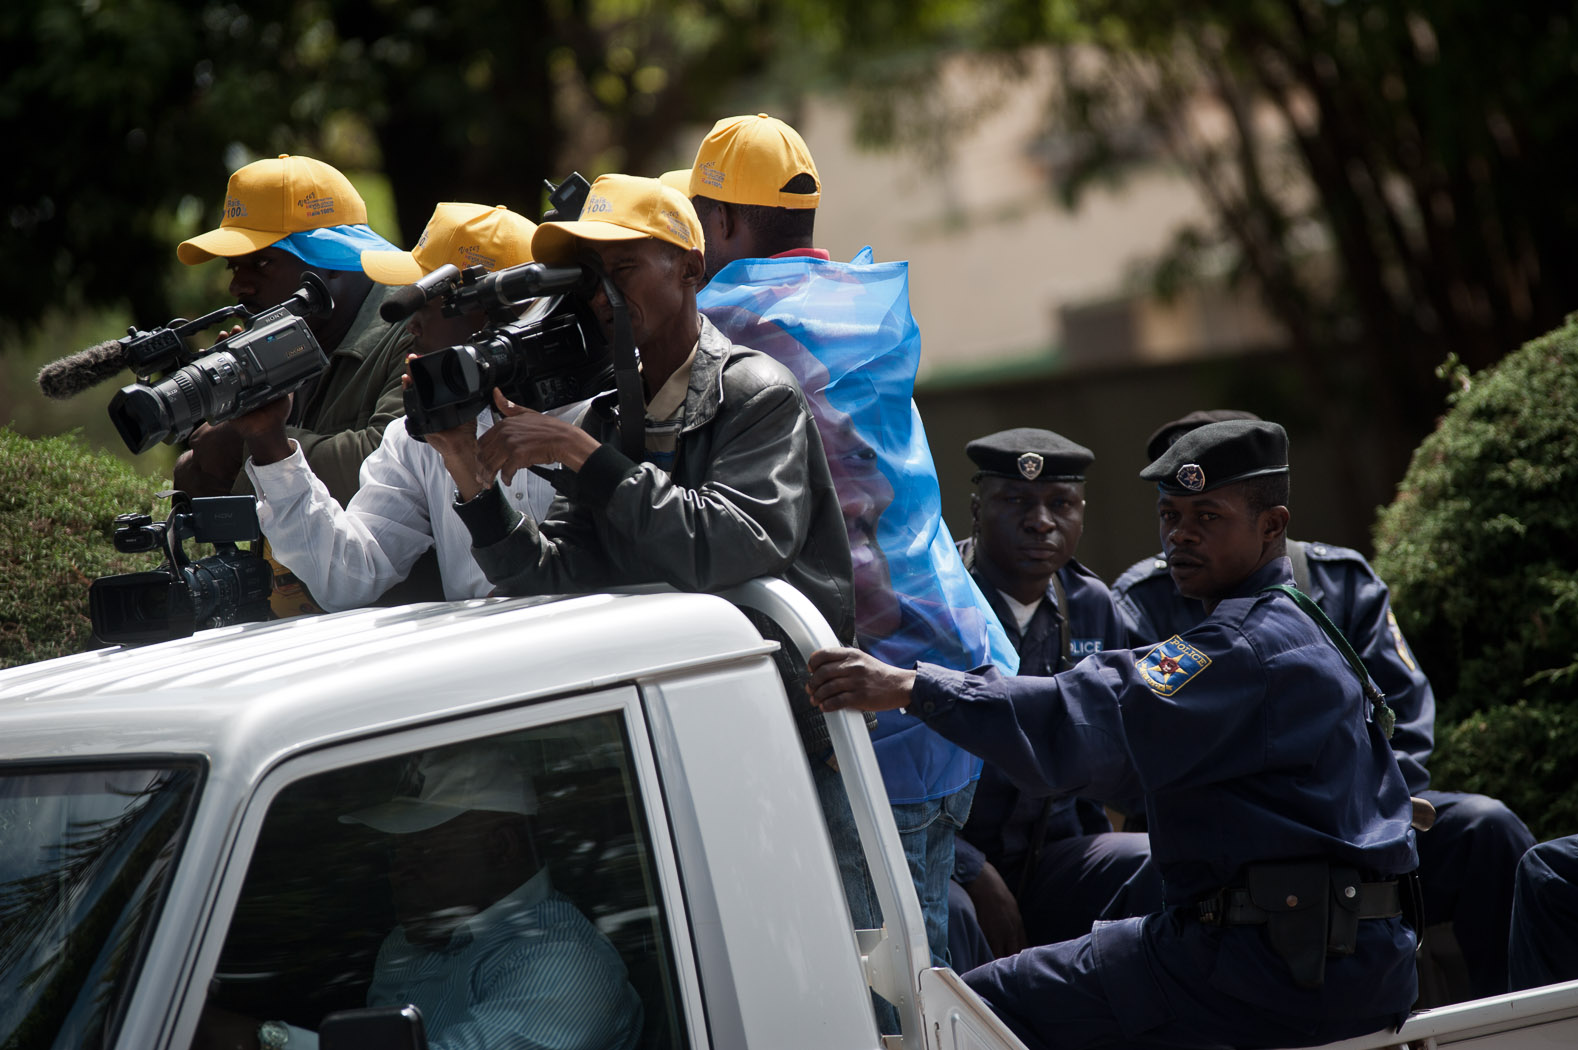 Cameramen, all wearing campaign material for President Joseph Kabila and accompanied by police, film a pro-Kabila candidate on the final day of campaigning.